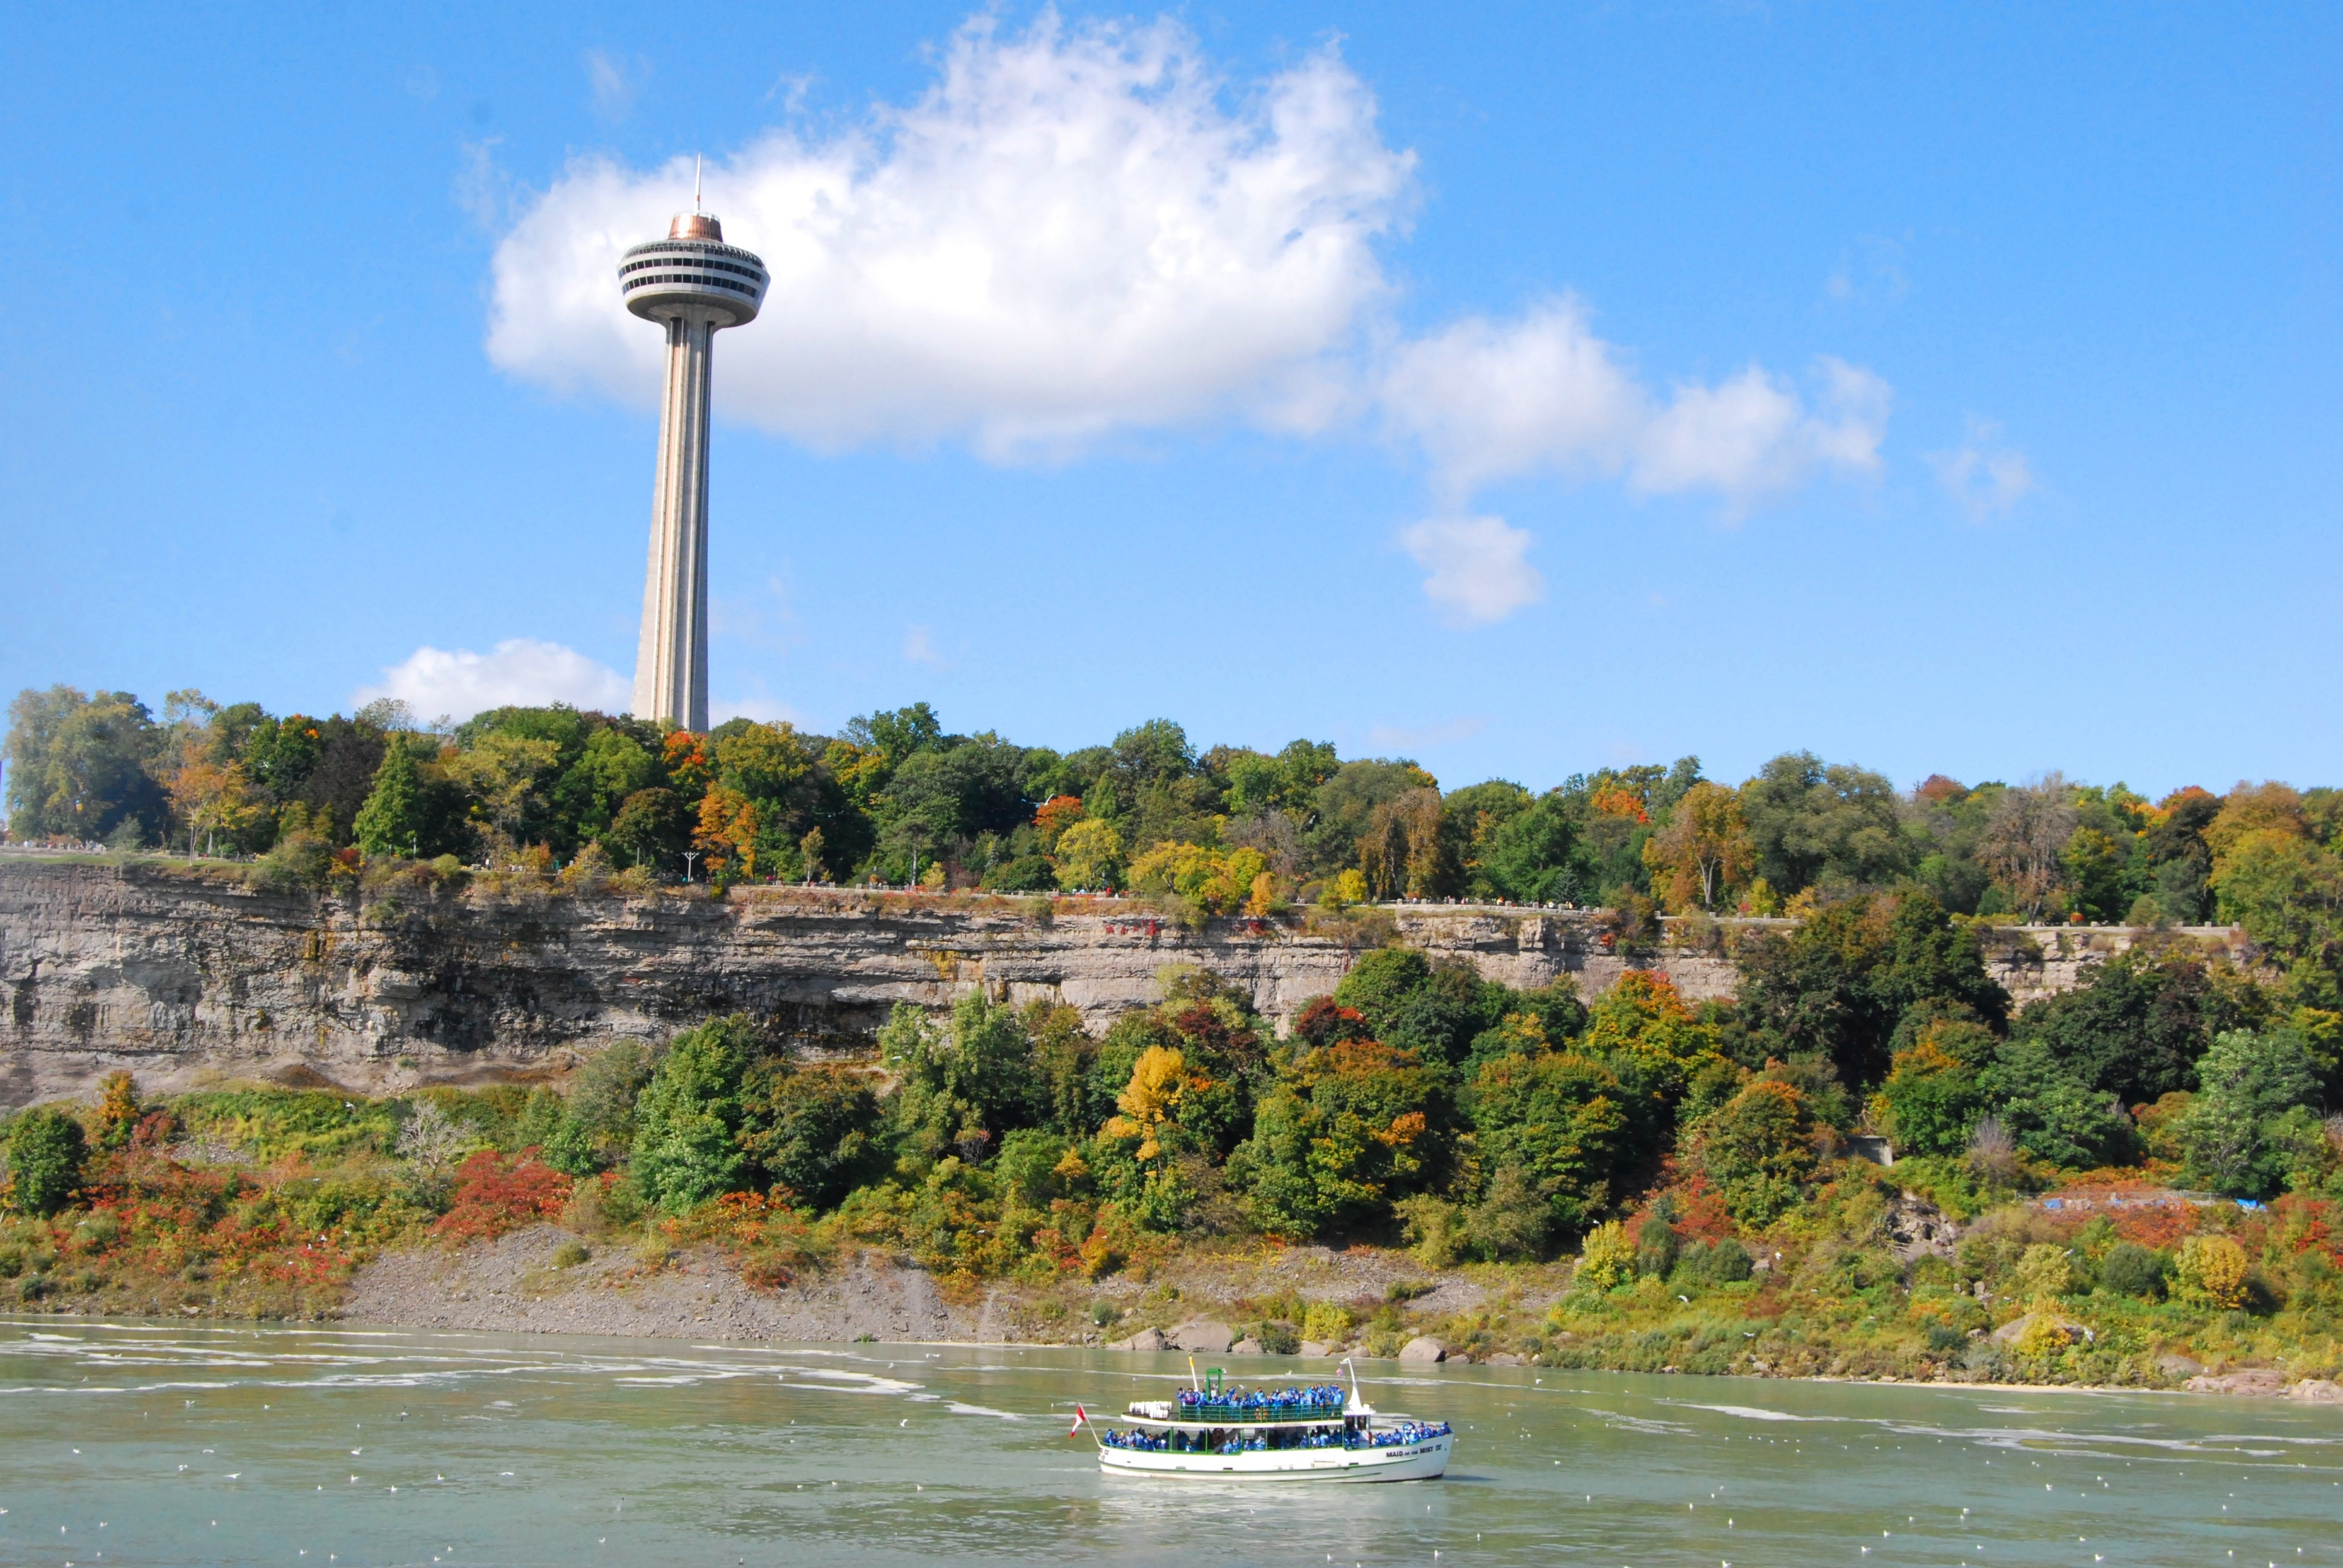 4-Day  Niagara Falls, Toronto, Montreal Tour from New York/New Jersey